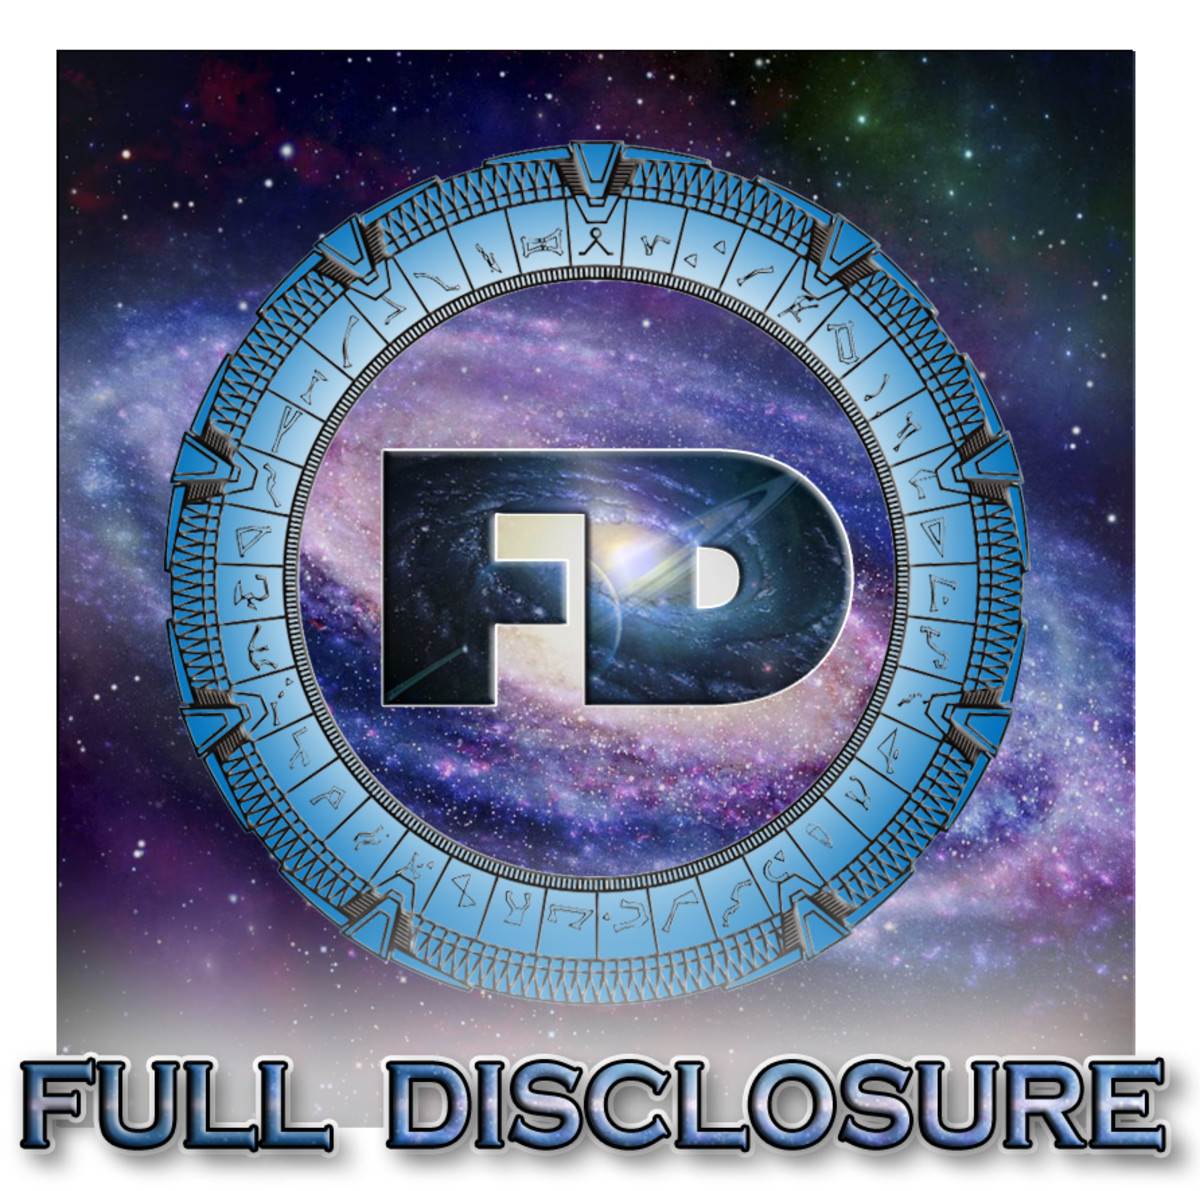 This the current Avatar of Somethgblue, it represents Full Disclosure, a concept that may very well have been introduced in the New Age Community to distract of from seeking the truth.